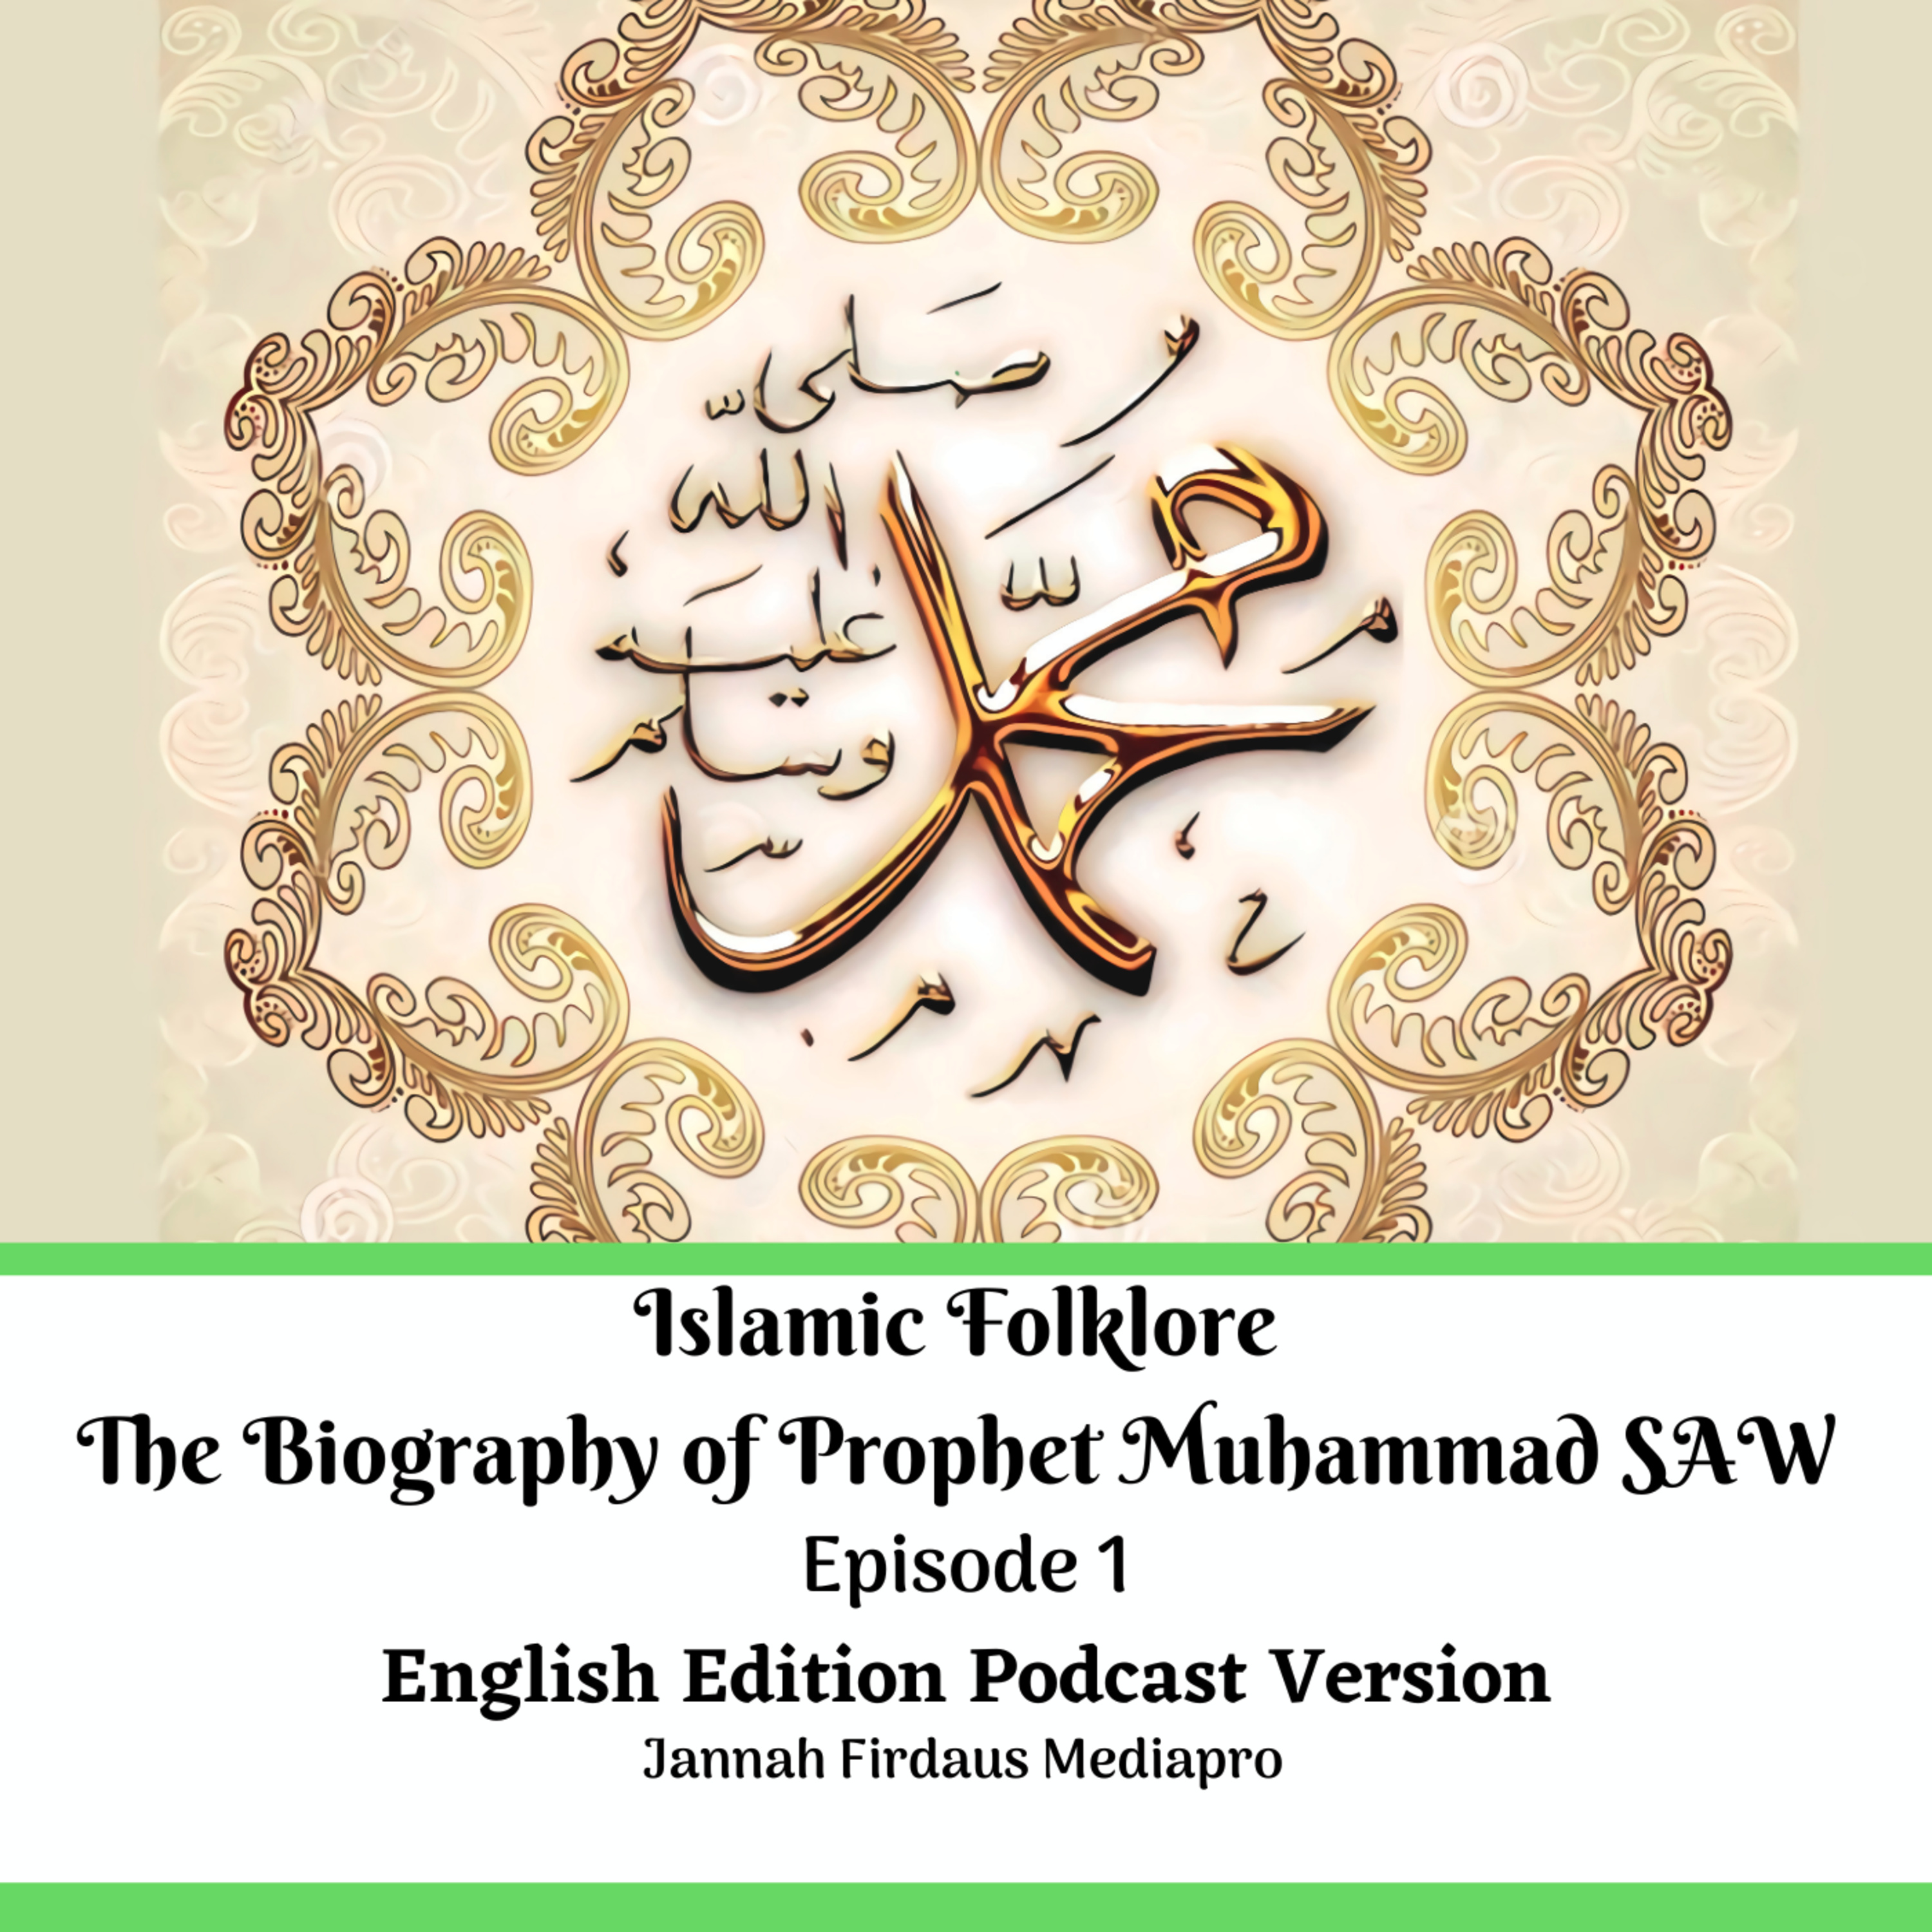 Islamic Folklore The Biography of Prophet Muhammad SAW Episode 1 English Edition Podcast Version